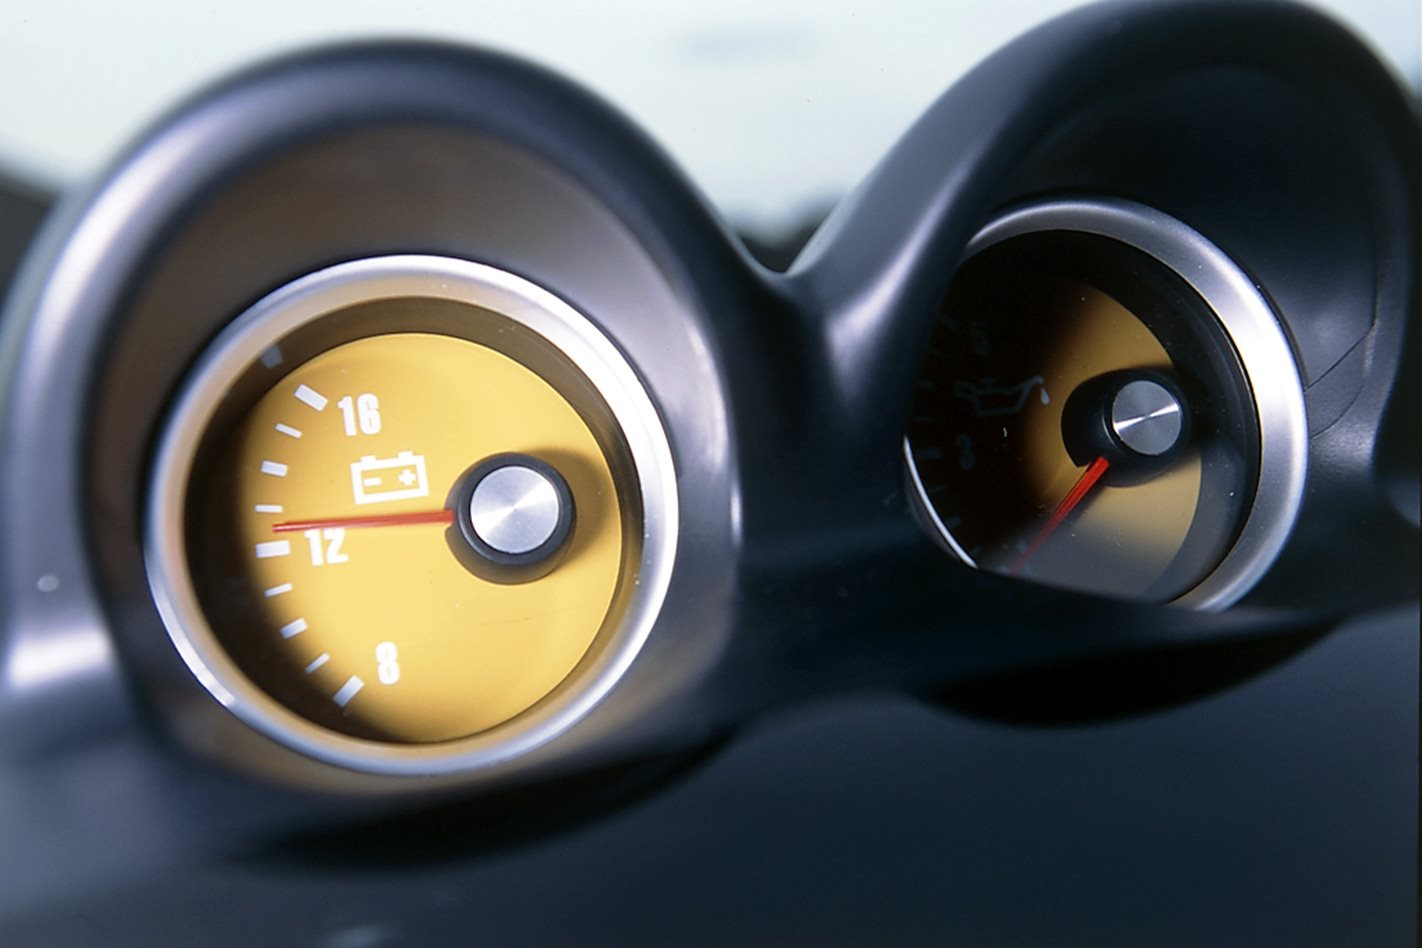 2004 Holden Monaro VZ gauges